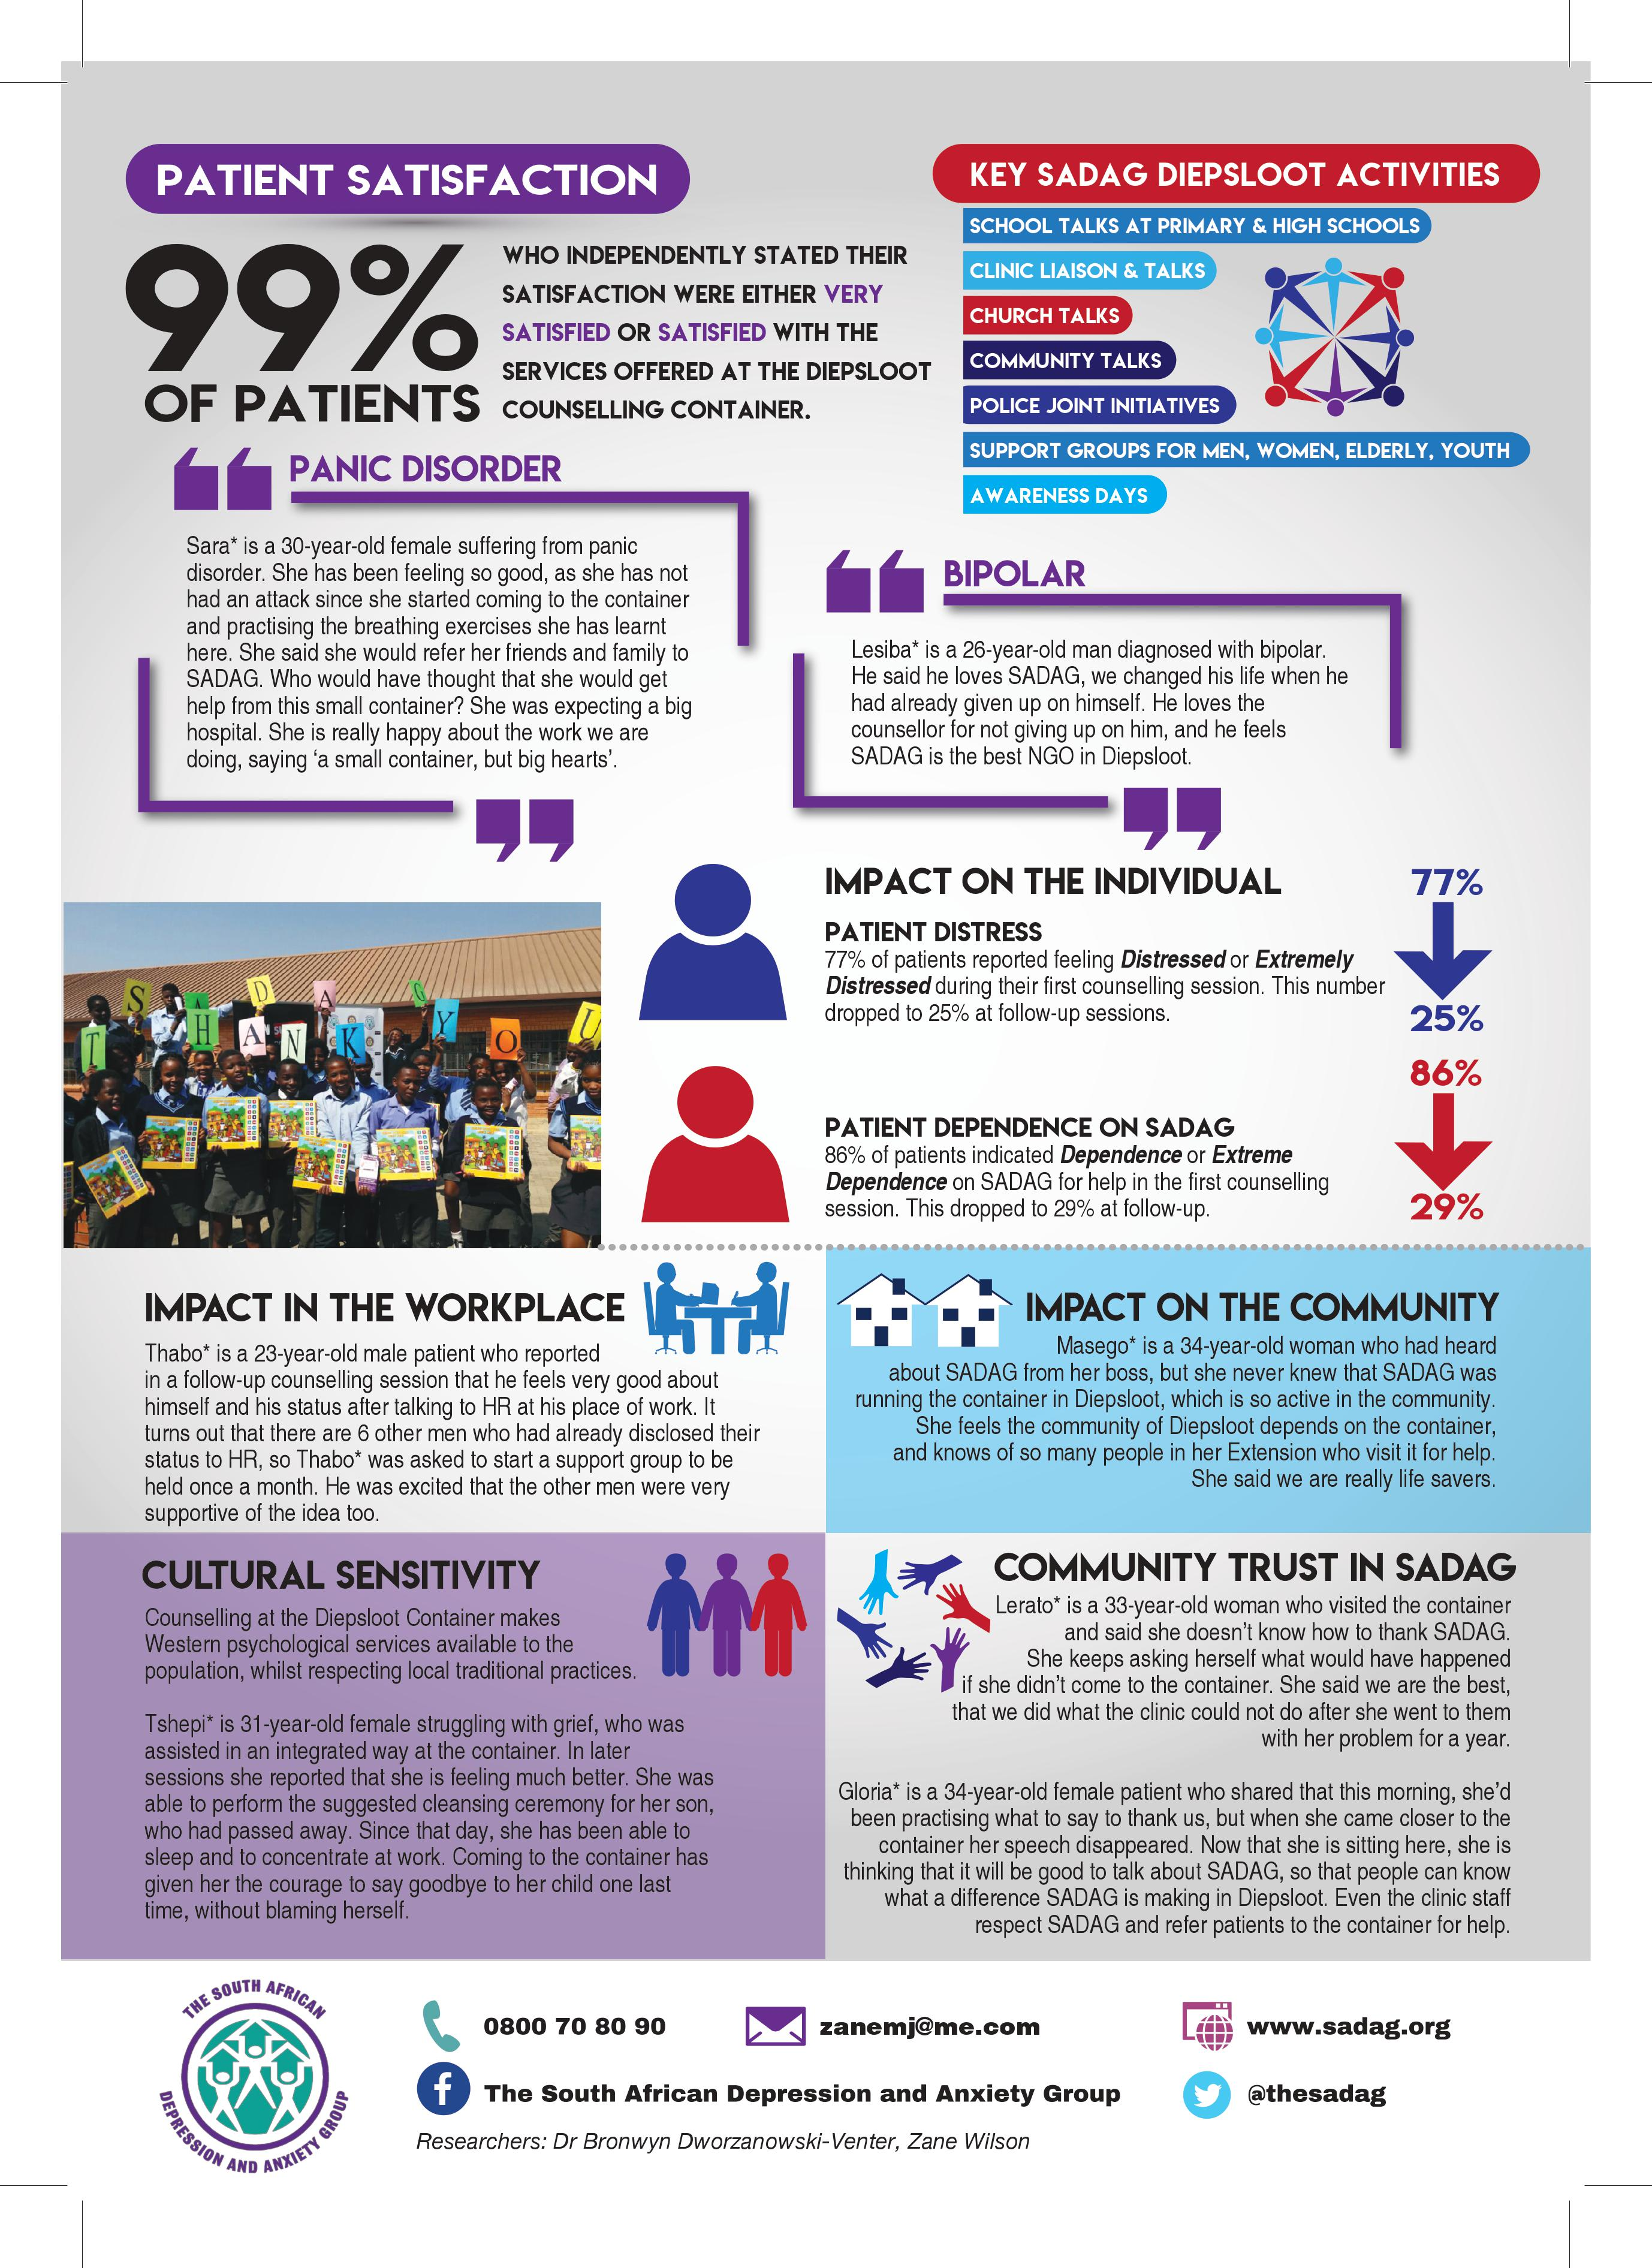 Sadag Diepsloot Infographic Version A images 2